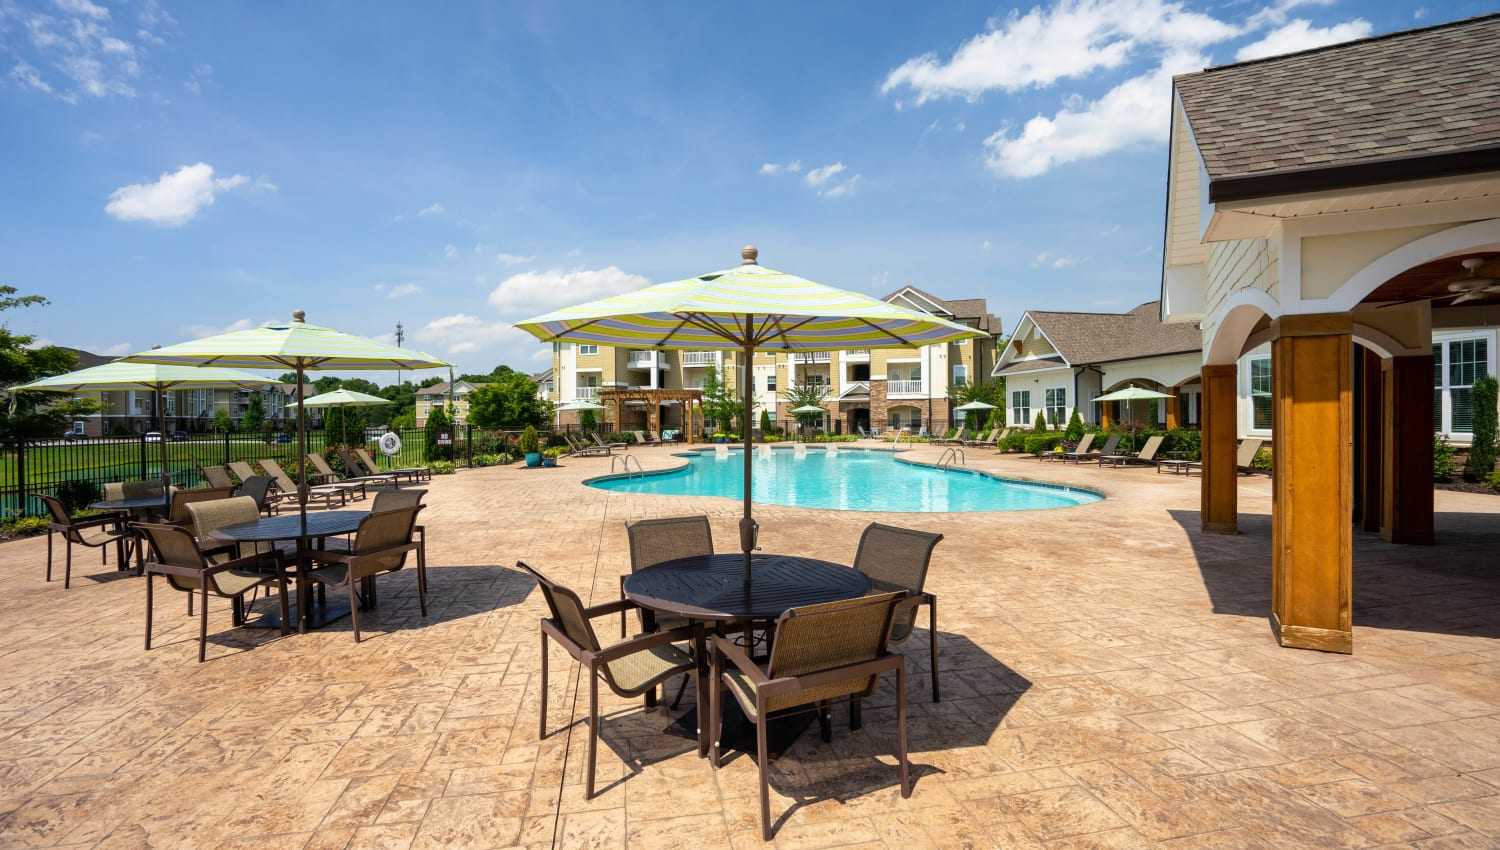 Shaded seating near the pool at Legends at White Oak in Ooltewah, Tennessee